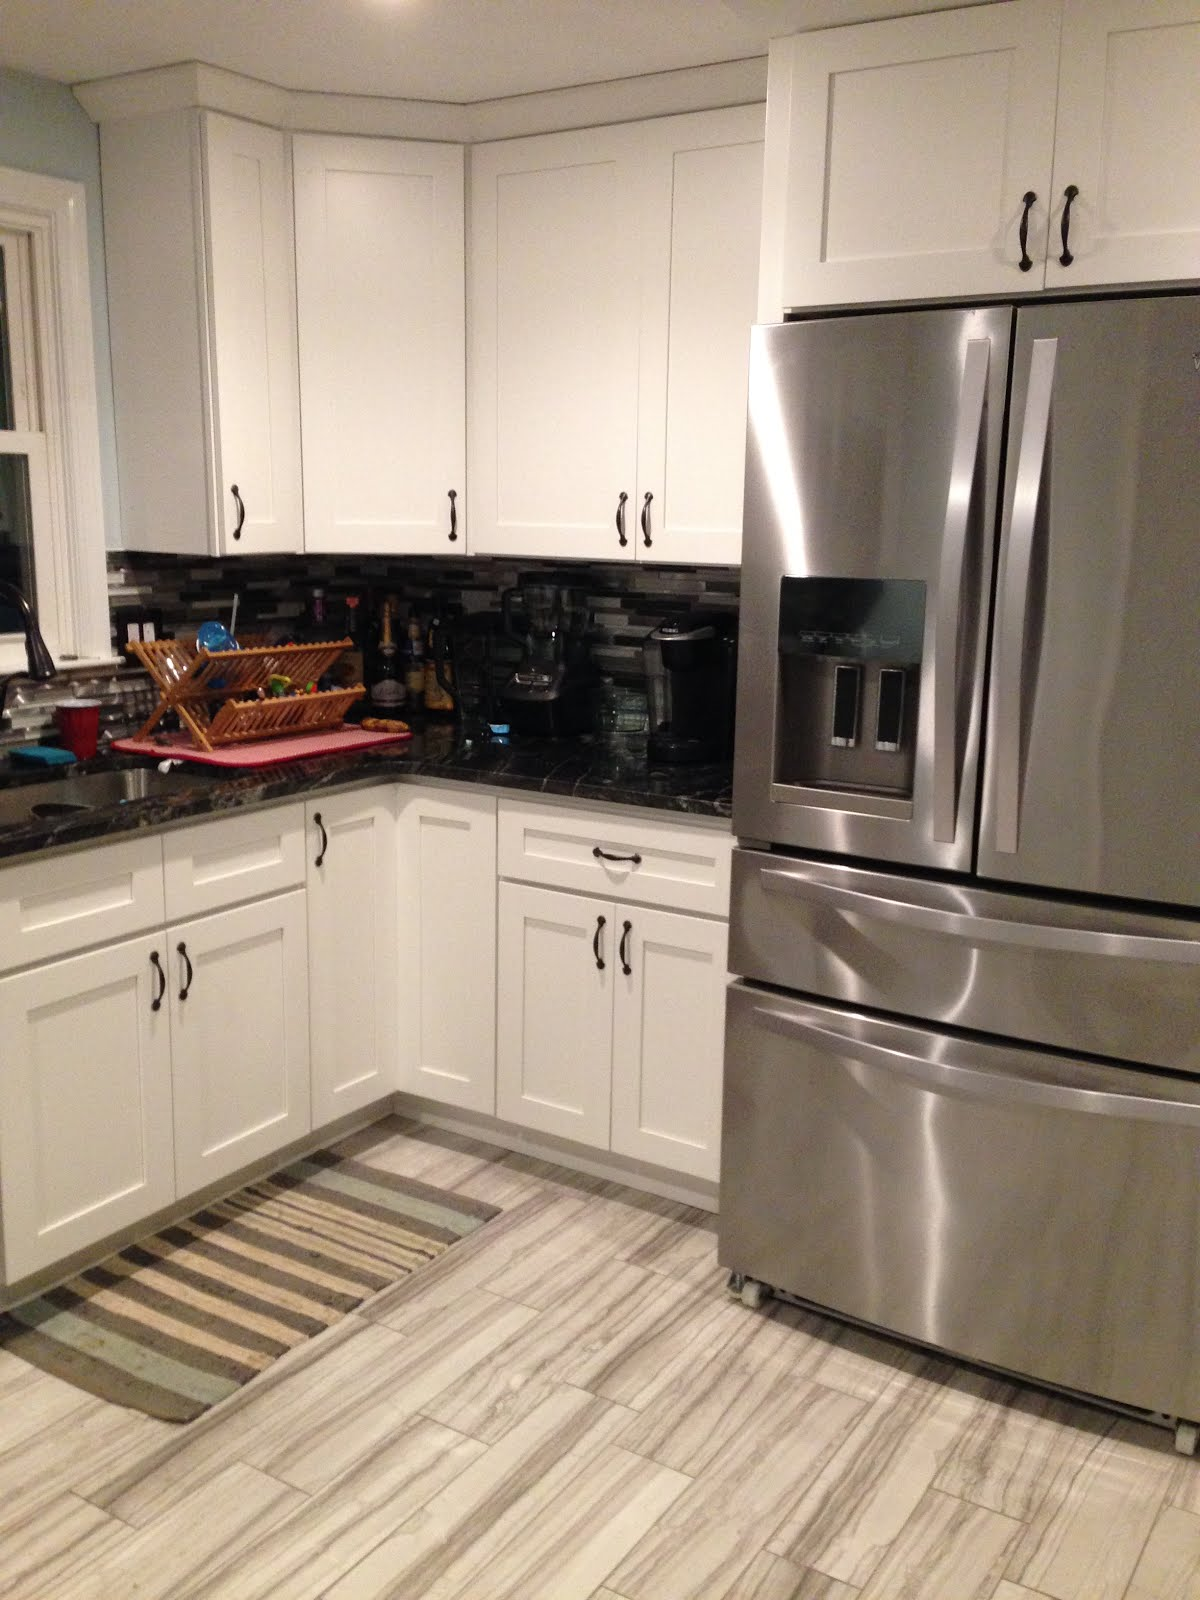 updated kitchen with white cabinets and black countertops